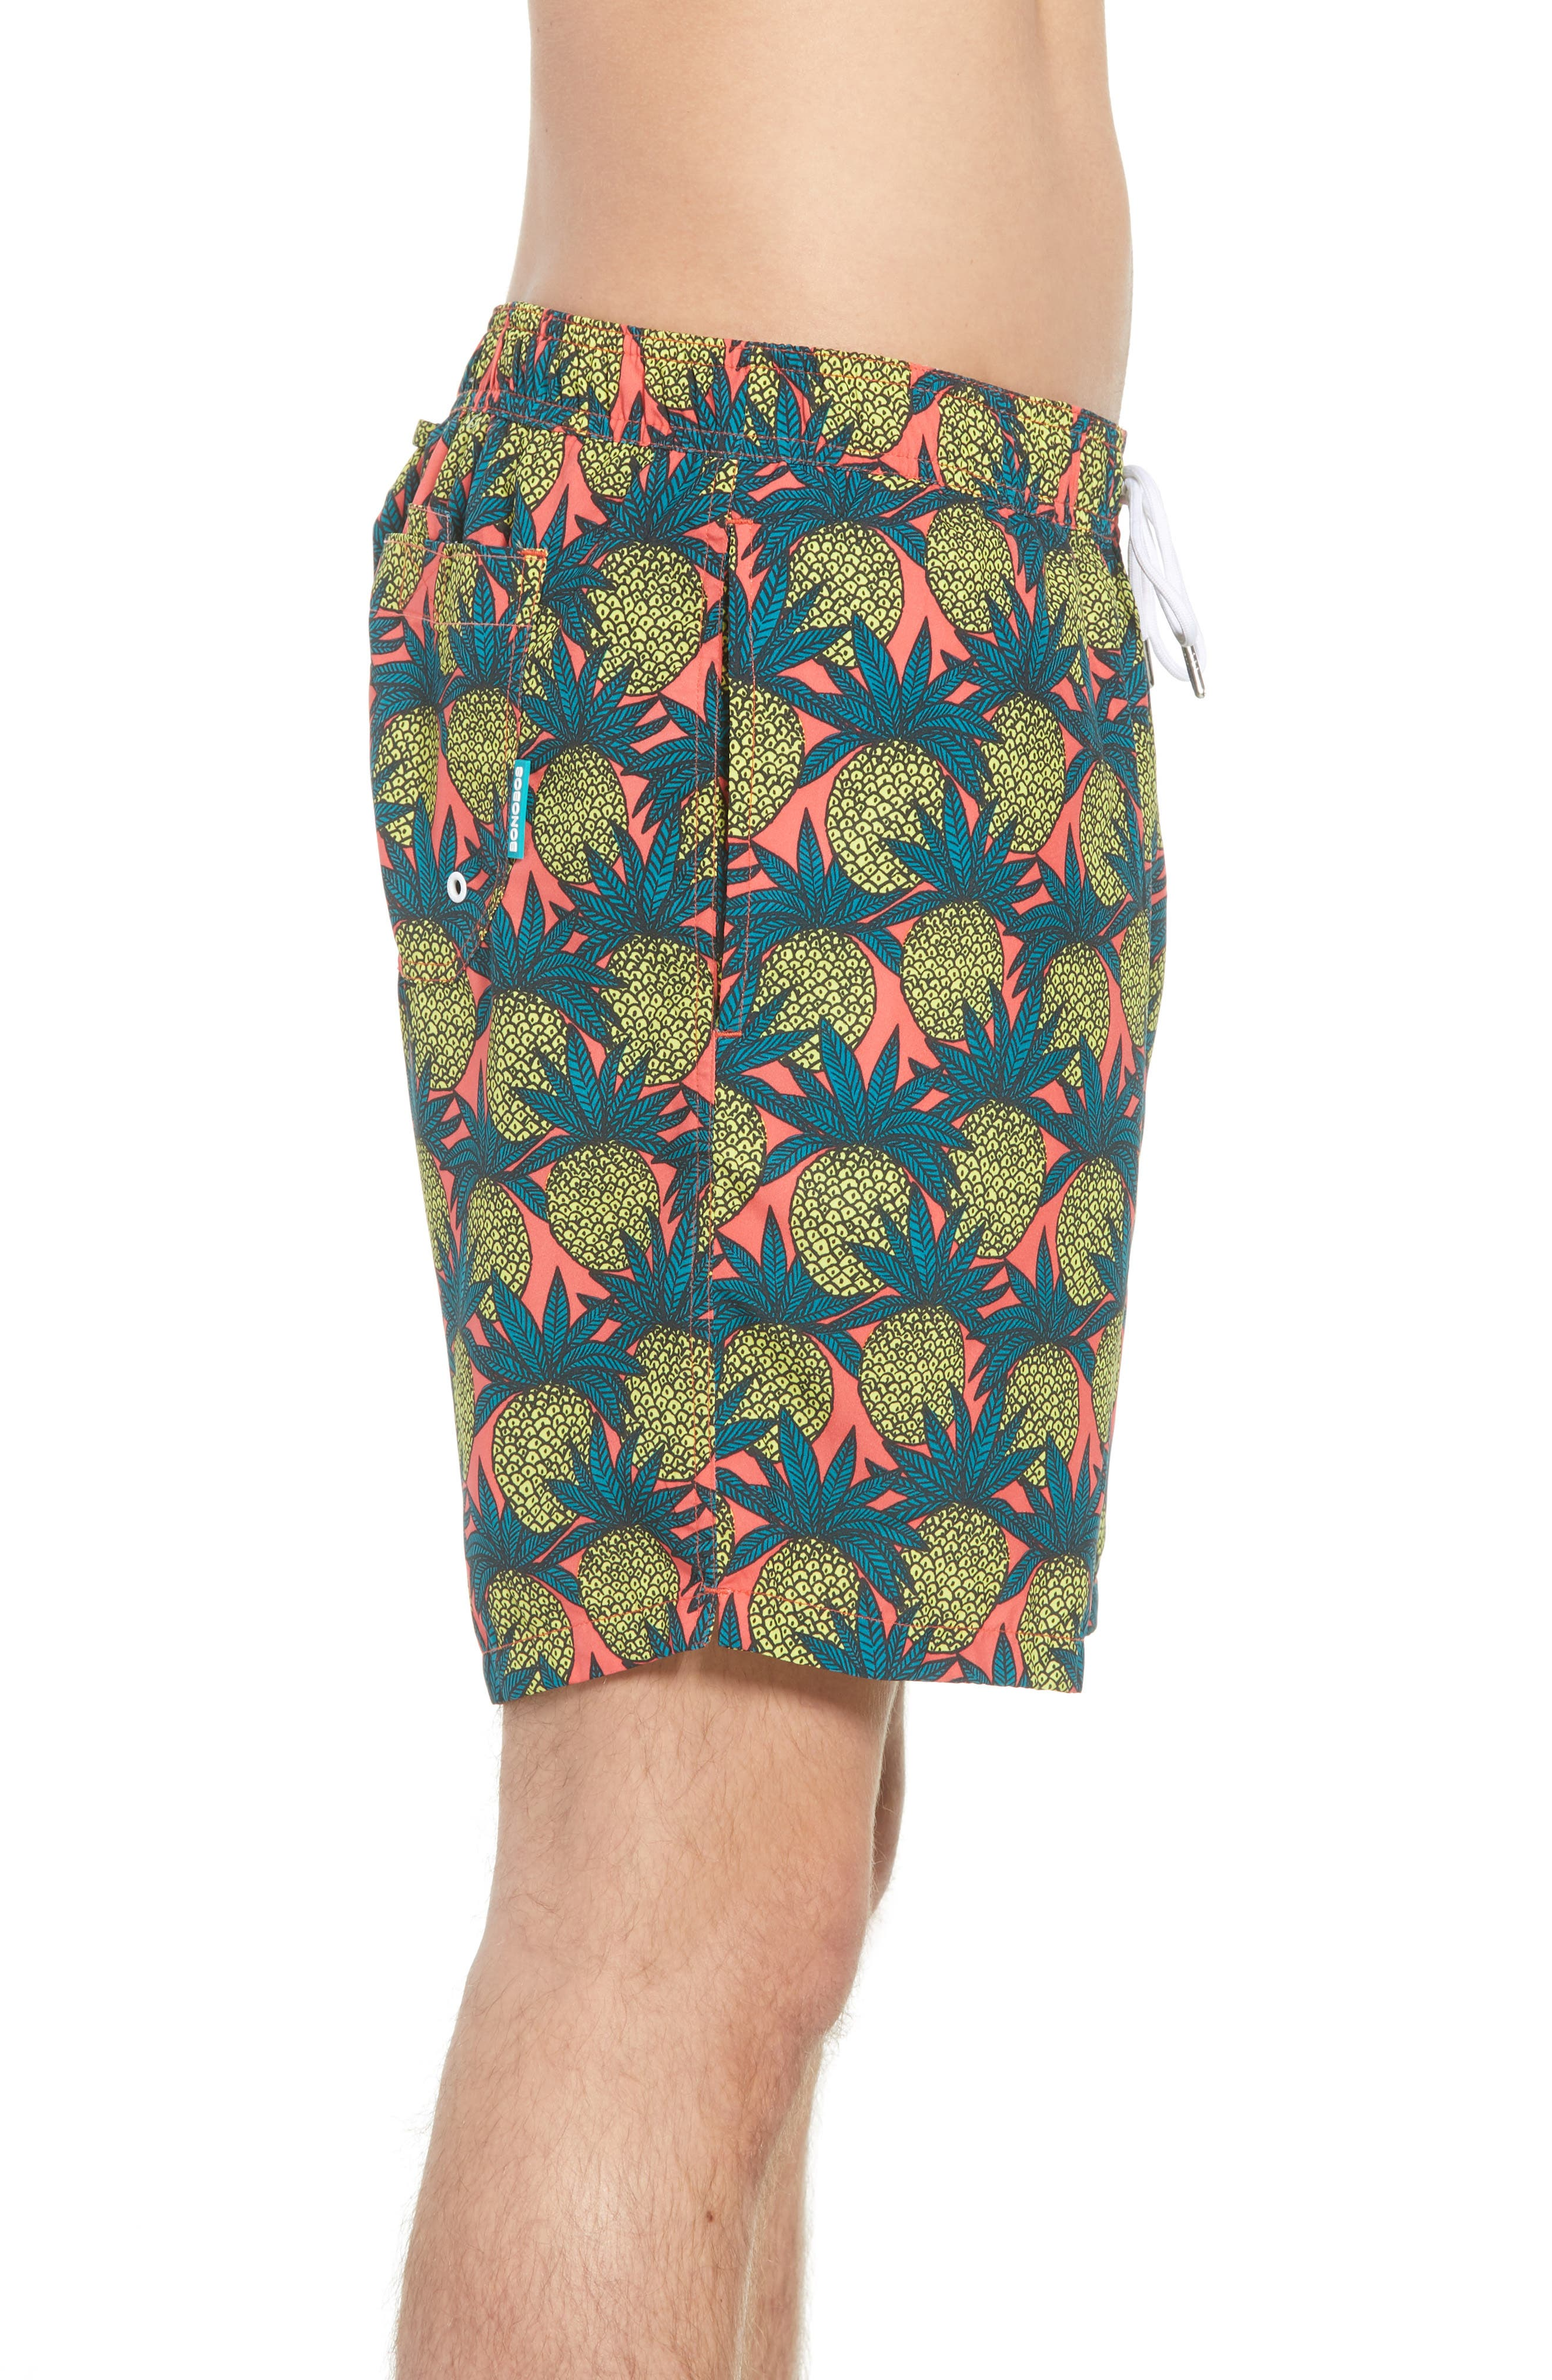 Banzai 7-Inch Swim Trunks,                             Alternate thumbnail 3, color,                             Pineapple Fields